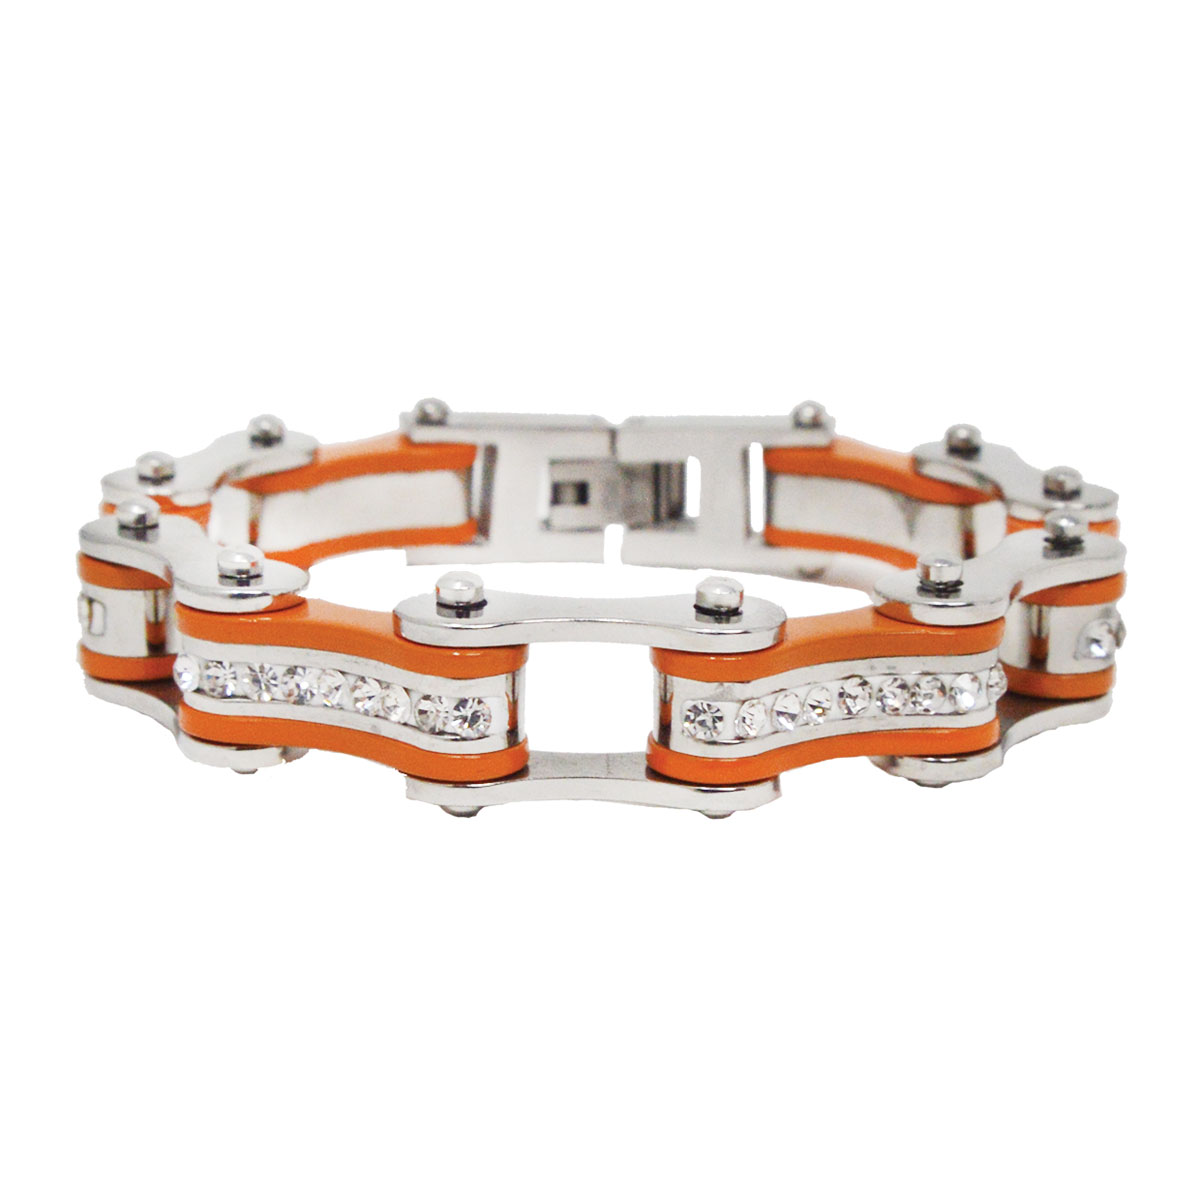 Vance Leathers Silver/Orange Bracelet with Crystal Links